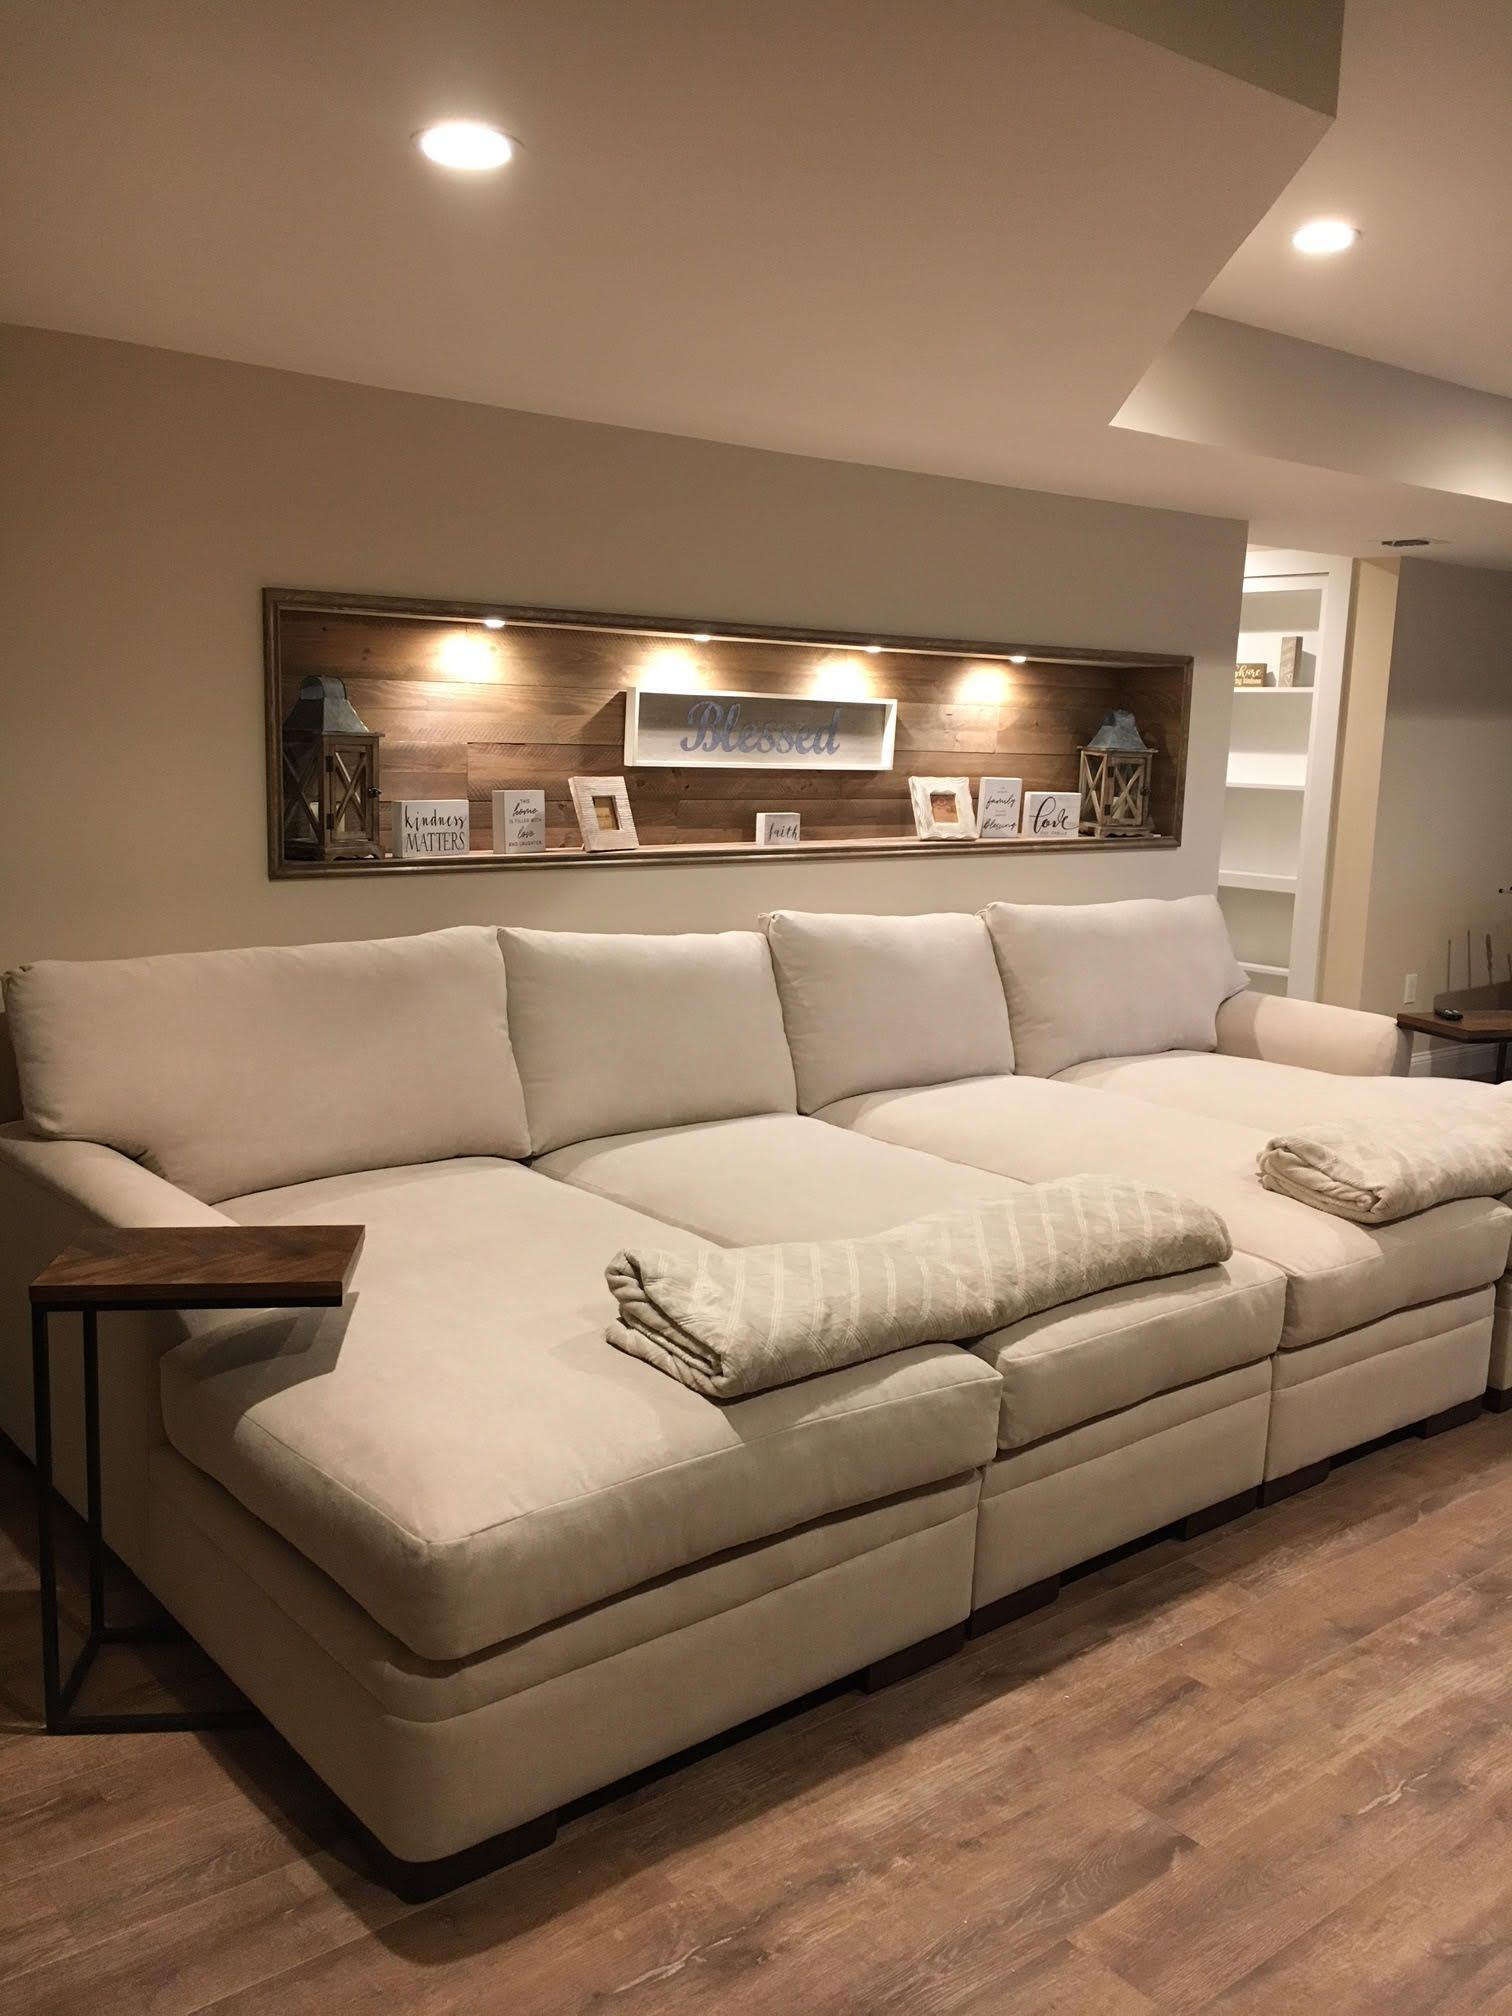 35 Clever Media Room Ideas In 2020 In 2020 Home Cinema Room